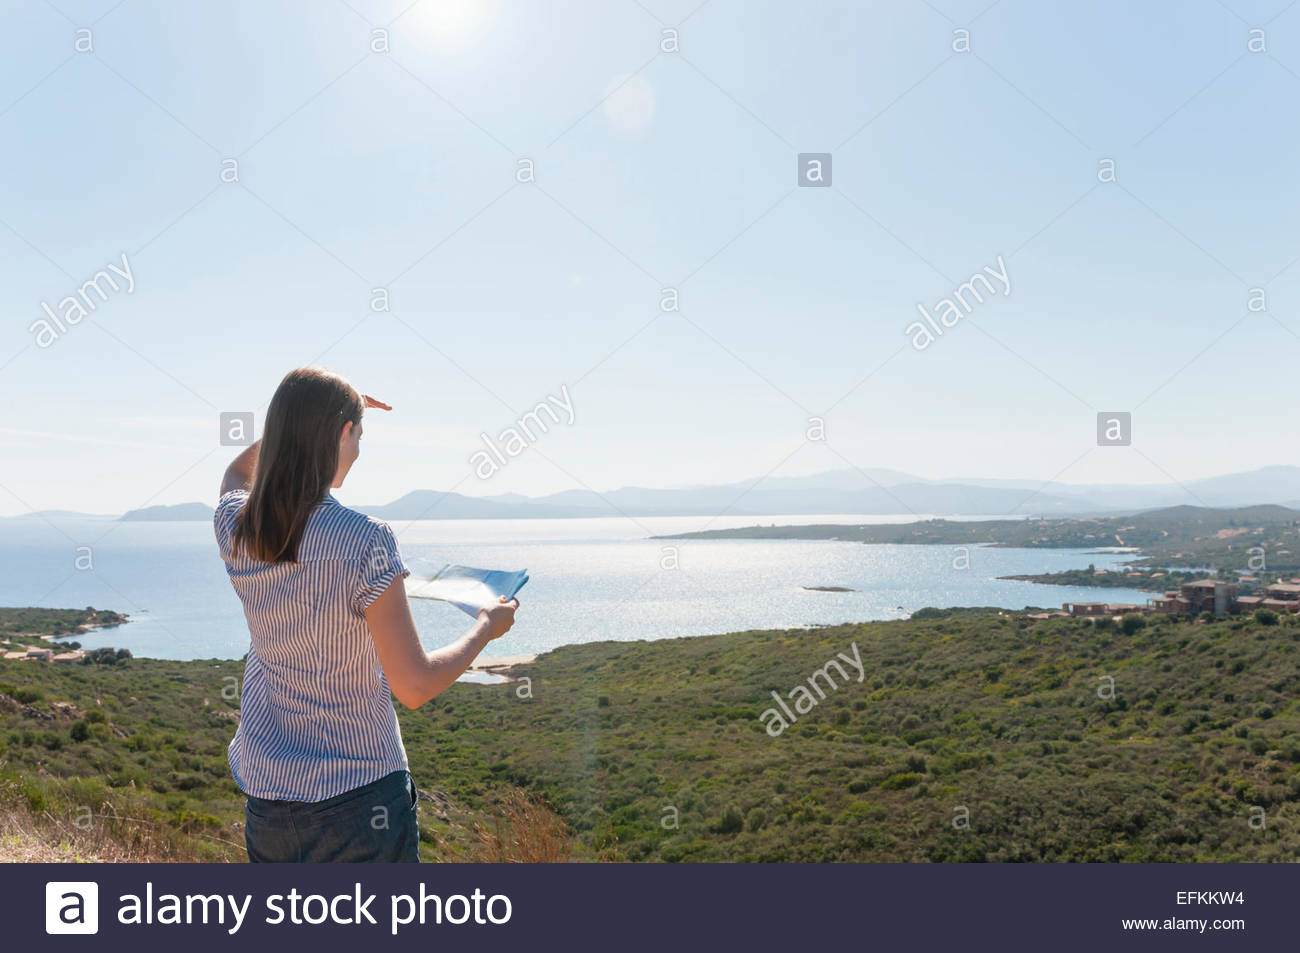 Rear view of mid adult woman holding map and looking at coastal view, Sardinia, Italy - Stock Image